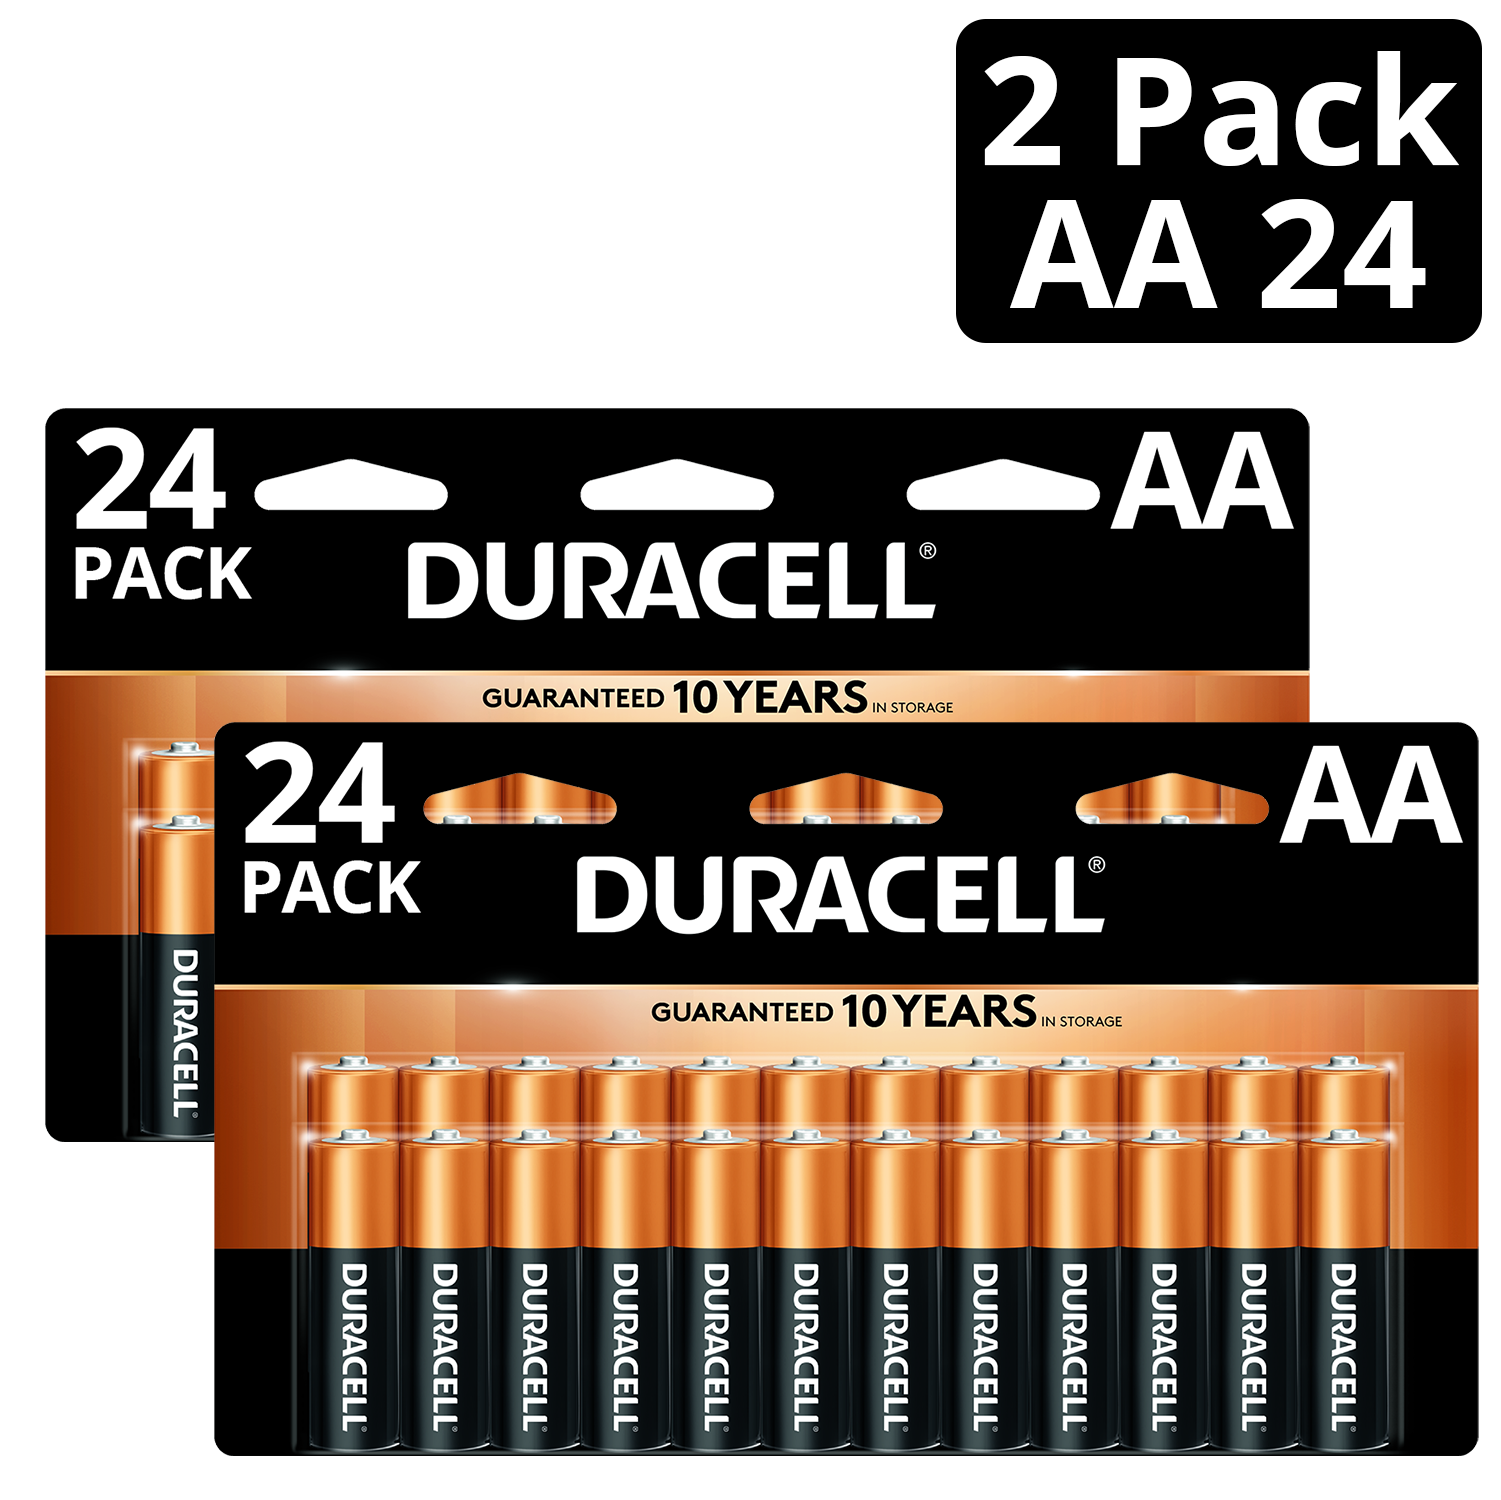 Duracell 1.5V Coppertop Alkaline AA Batteries 24 Pack